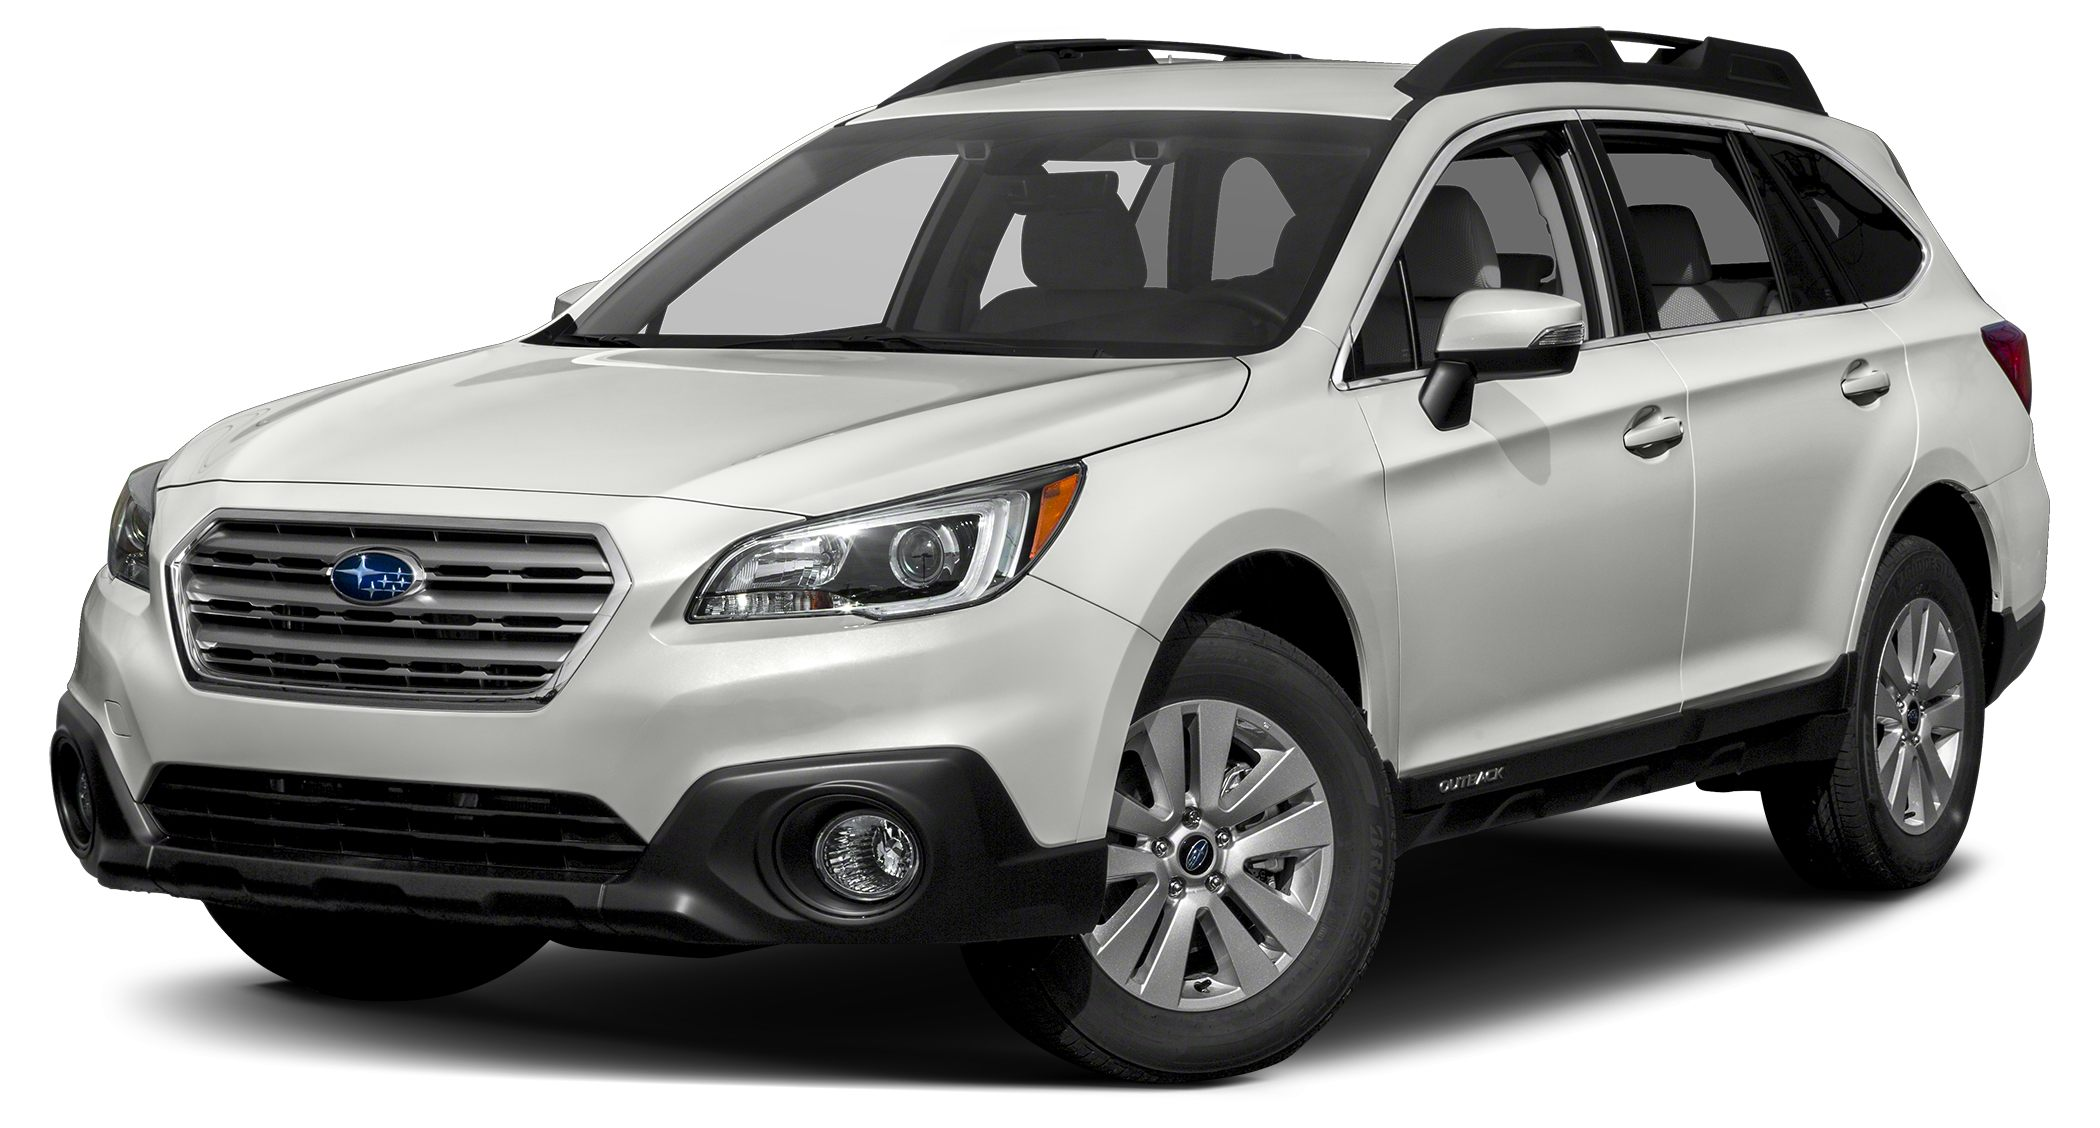 2017 Subaru Outback 25i Premium A select one-owner vehicle Wet-Weather Traction control keeps yo